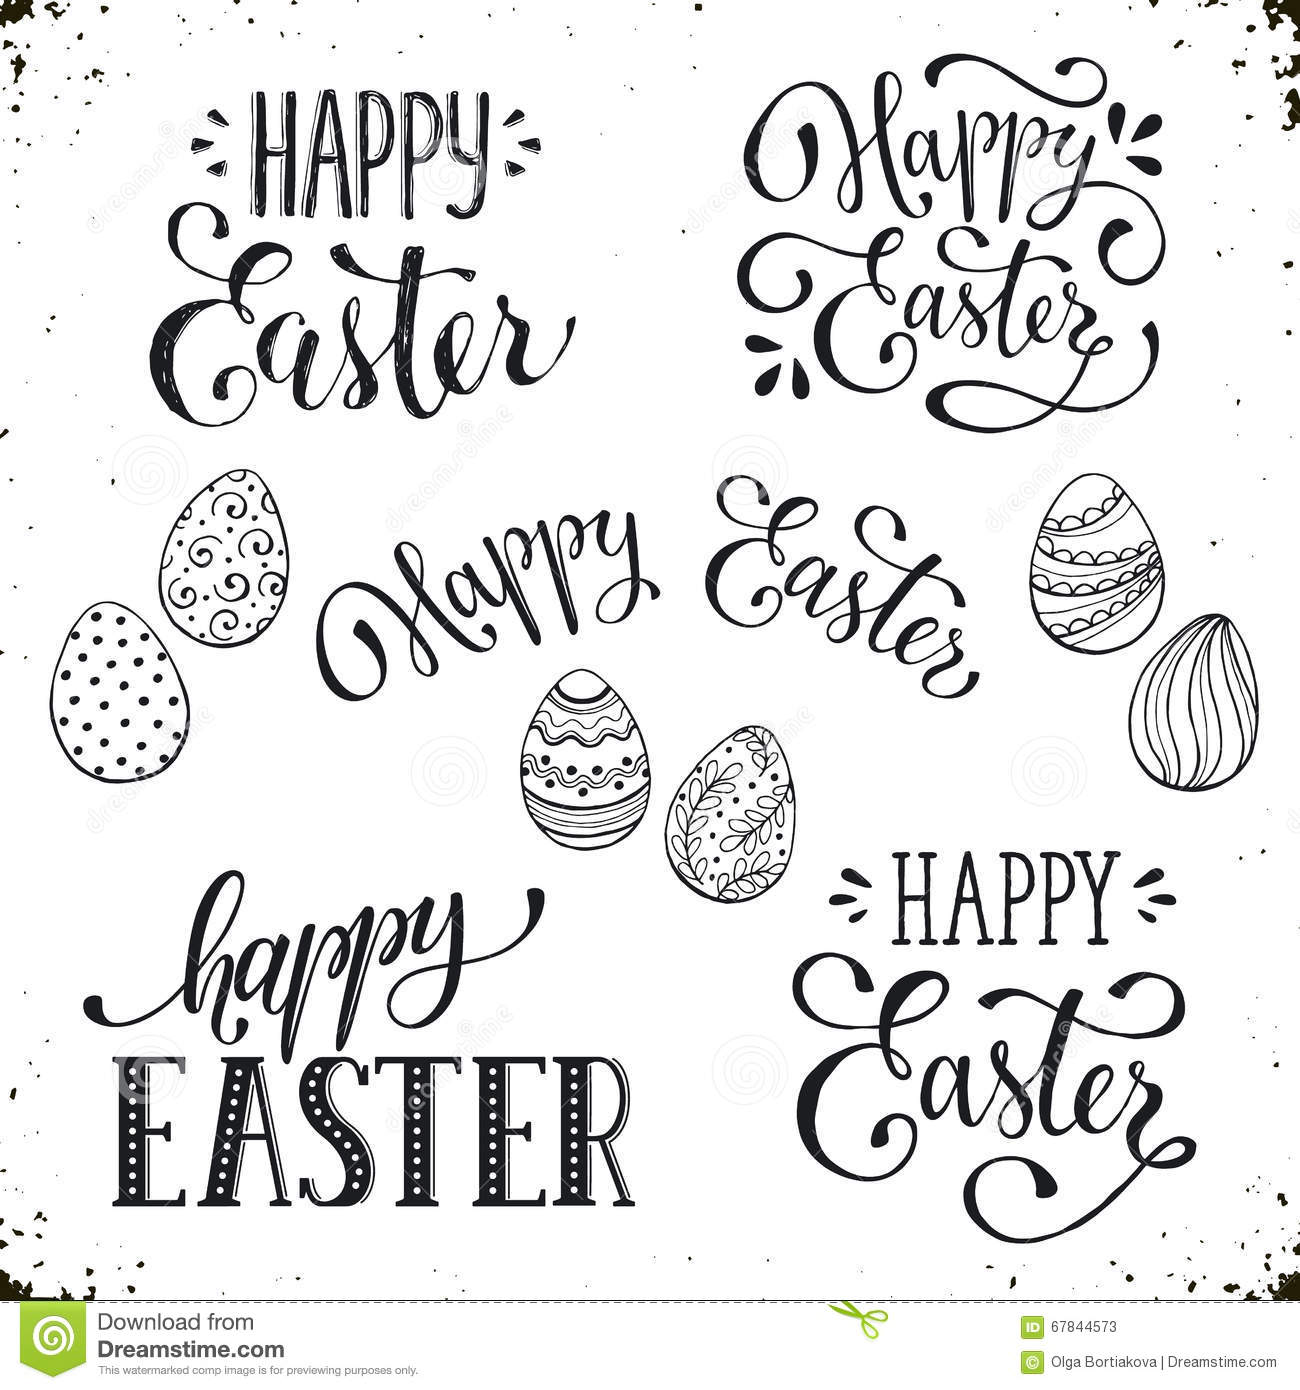 happy easter wording stock vector illustration of graphic 67844573